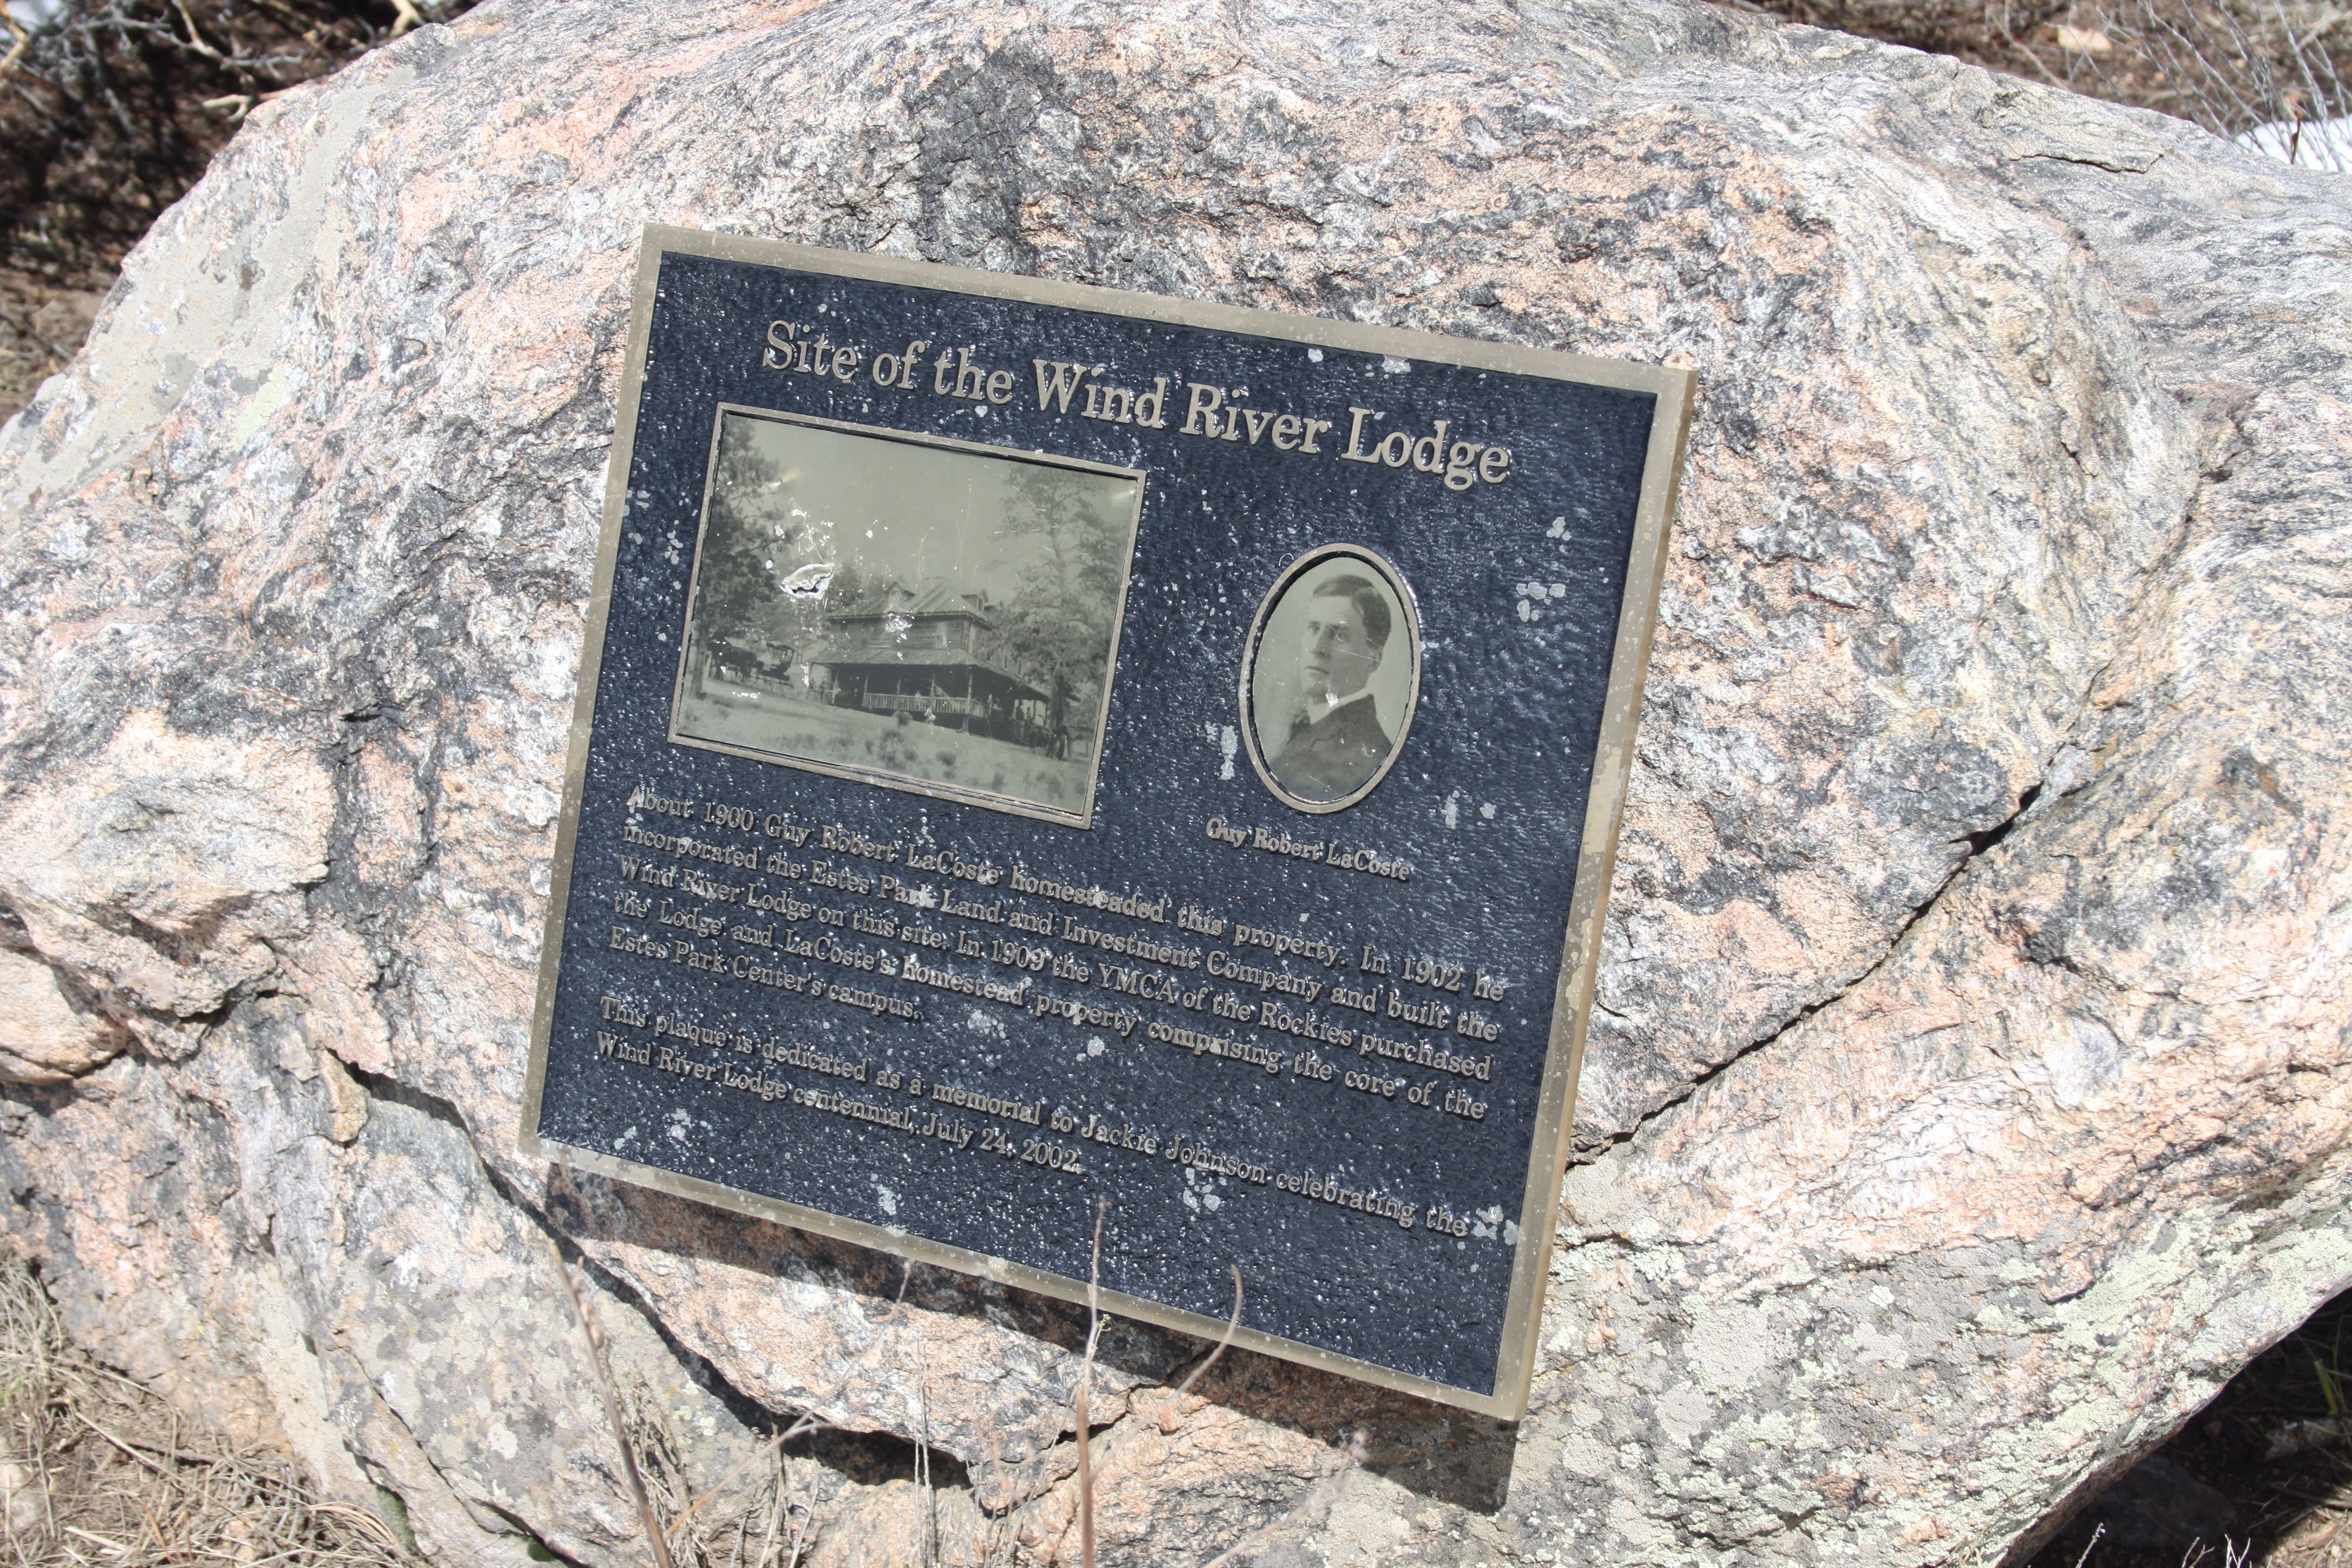 Site of the Wind River Lodge